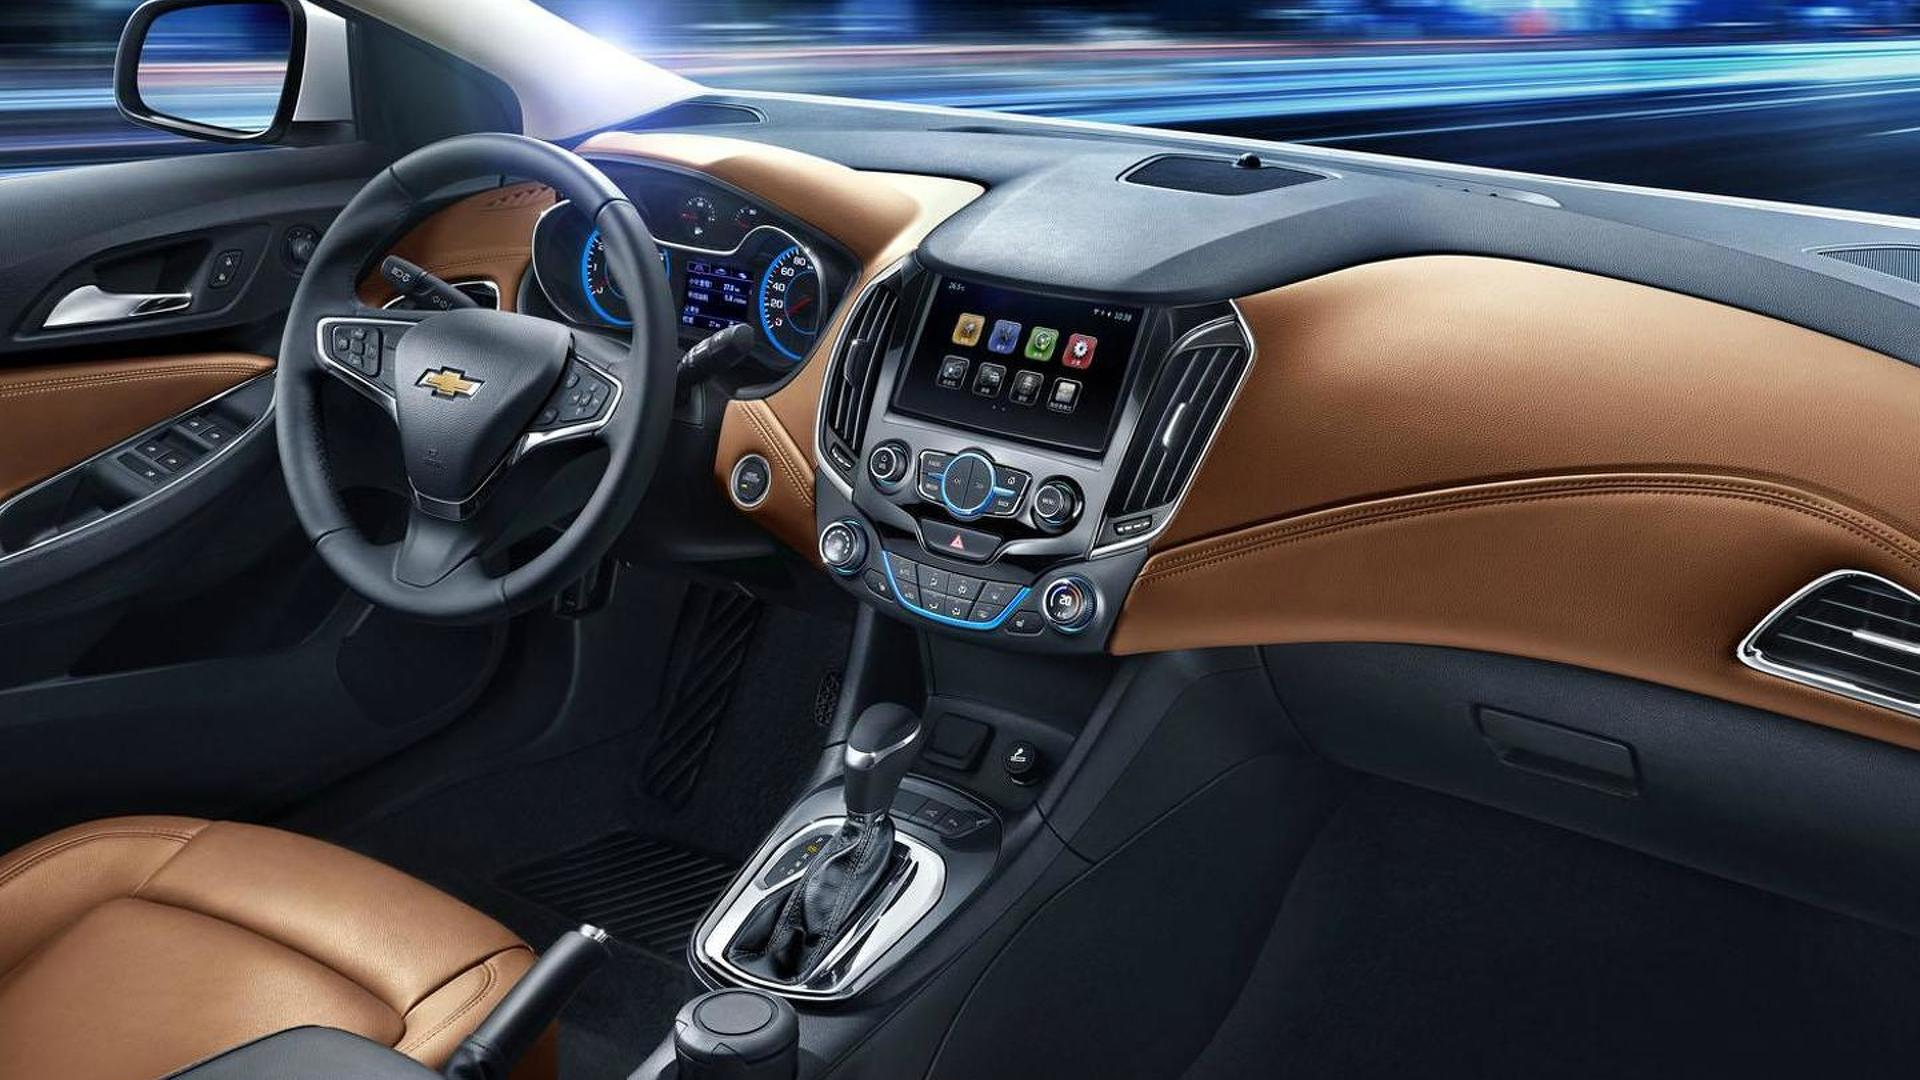 2015 2016 Chevrolet Cruze Interior Revealed